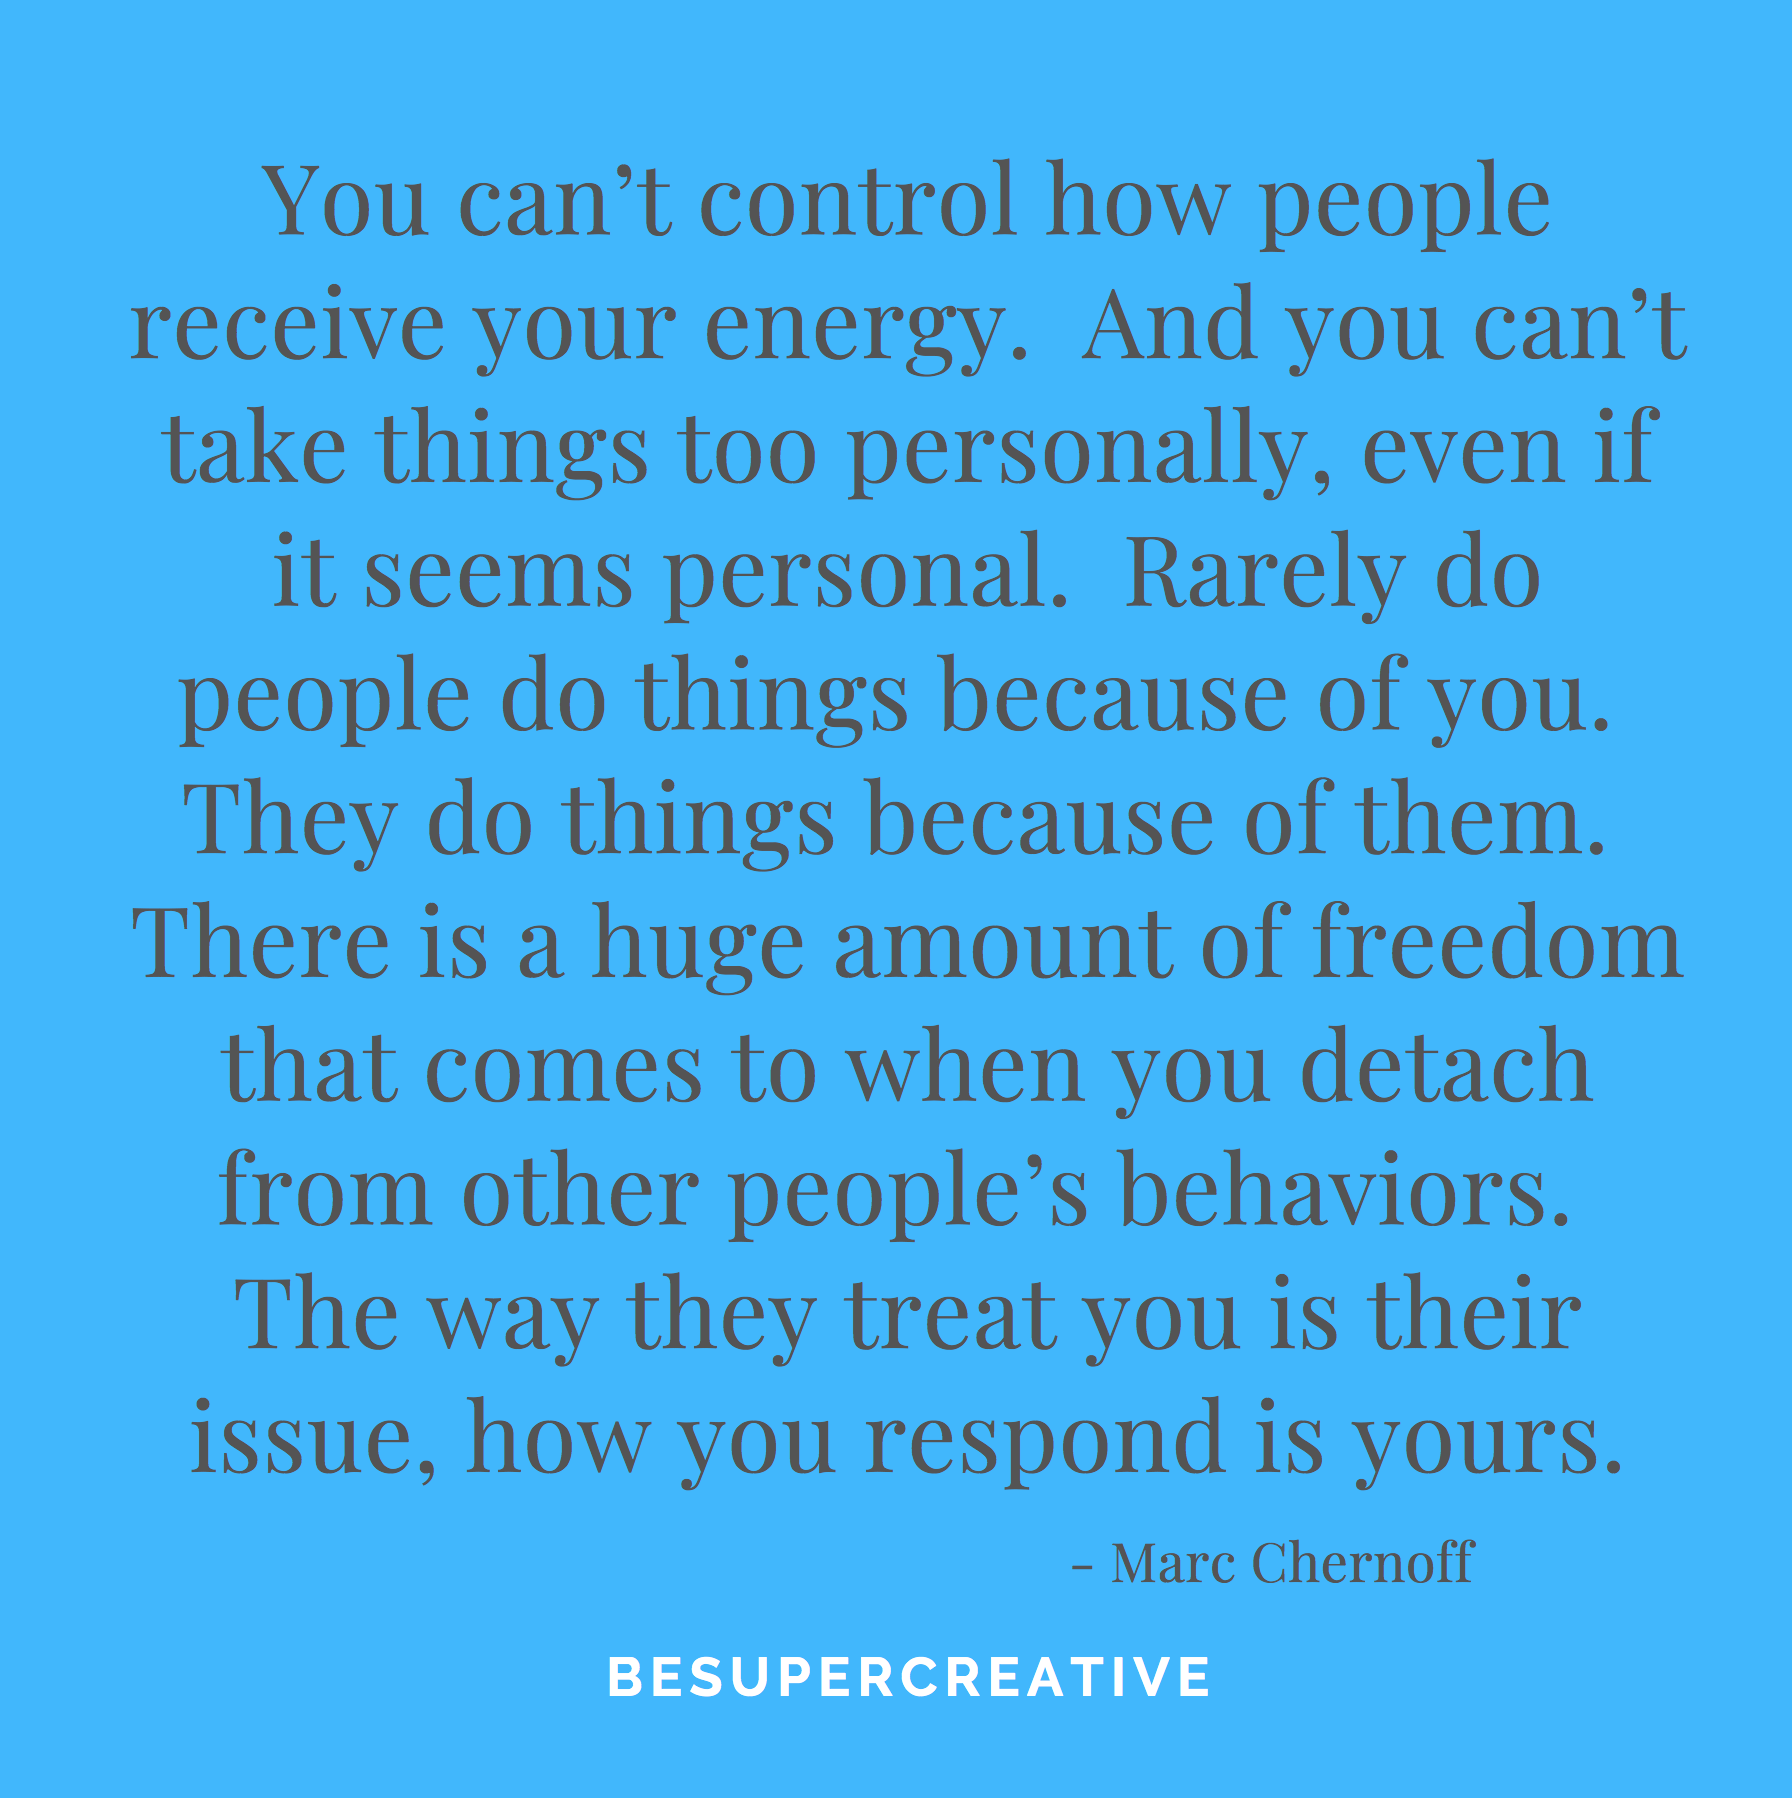 """ You can't control how people receive your energy. And you can't take things too personally, even if it seems personal. Rarely do people do things because of you. They do things because of them. There is a huge amount of freedom that comes to when you detach from other people's behaviors. The way they treat you is their issue, how you respond is yours."""